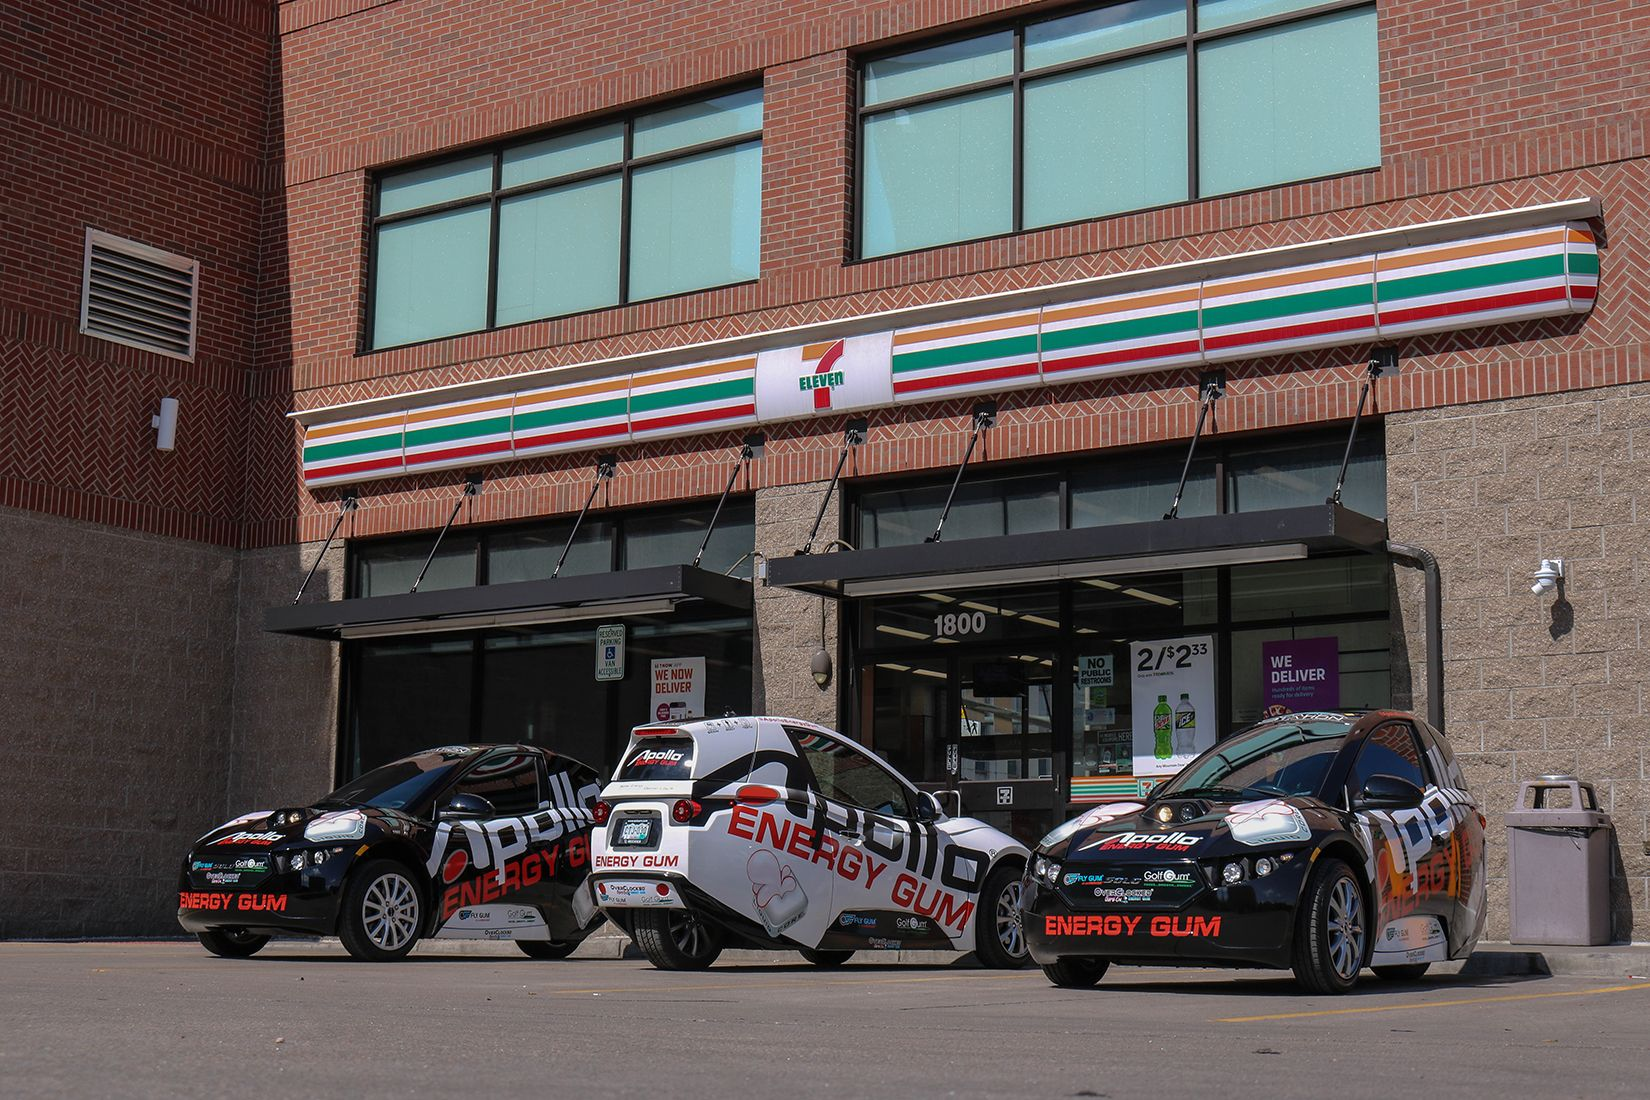 Apollo Fleet vehicles at a 7-11 in Downtown Denver